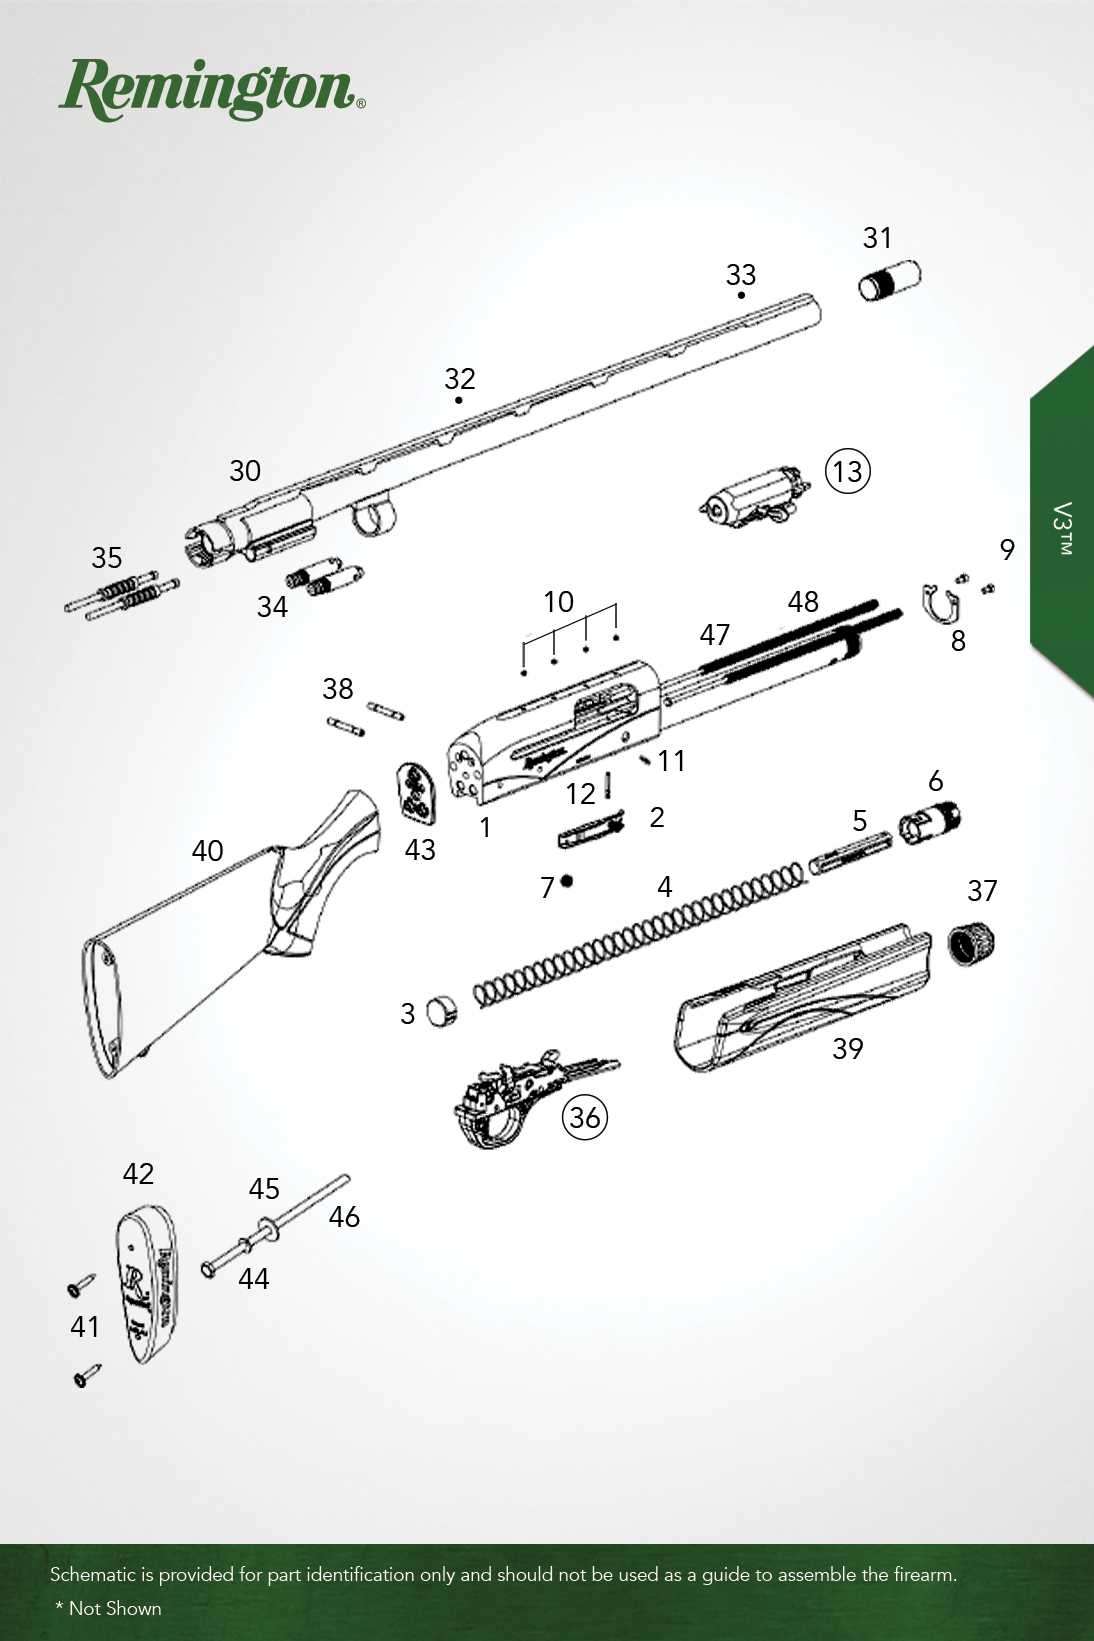 remington v3 shotgun schematic